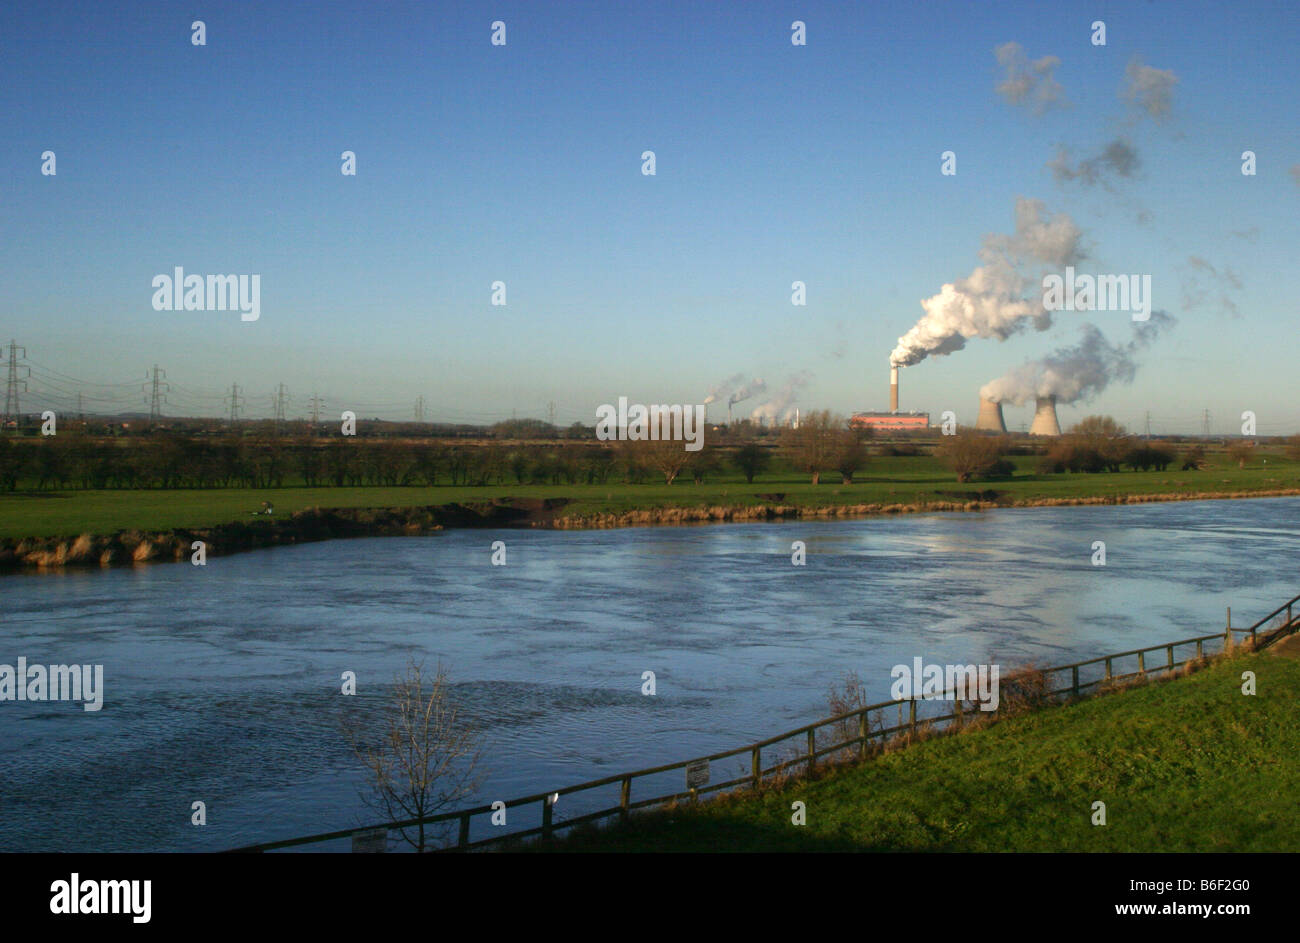 cottam power station in the trent valley providing electricity to the east midalnds - Stock Image